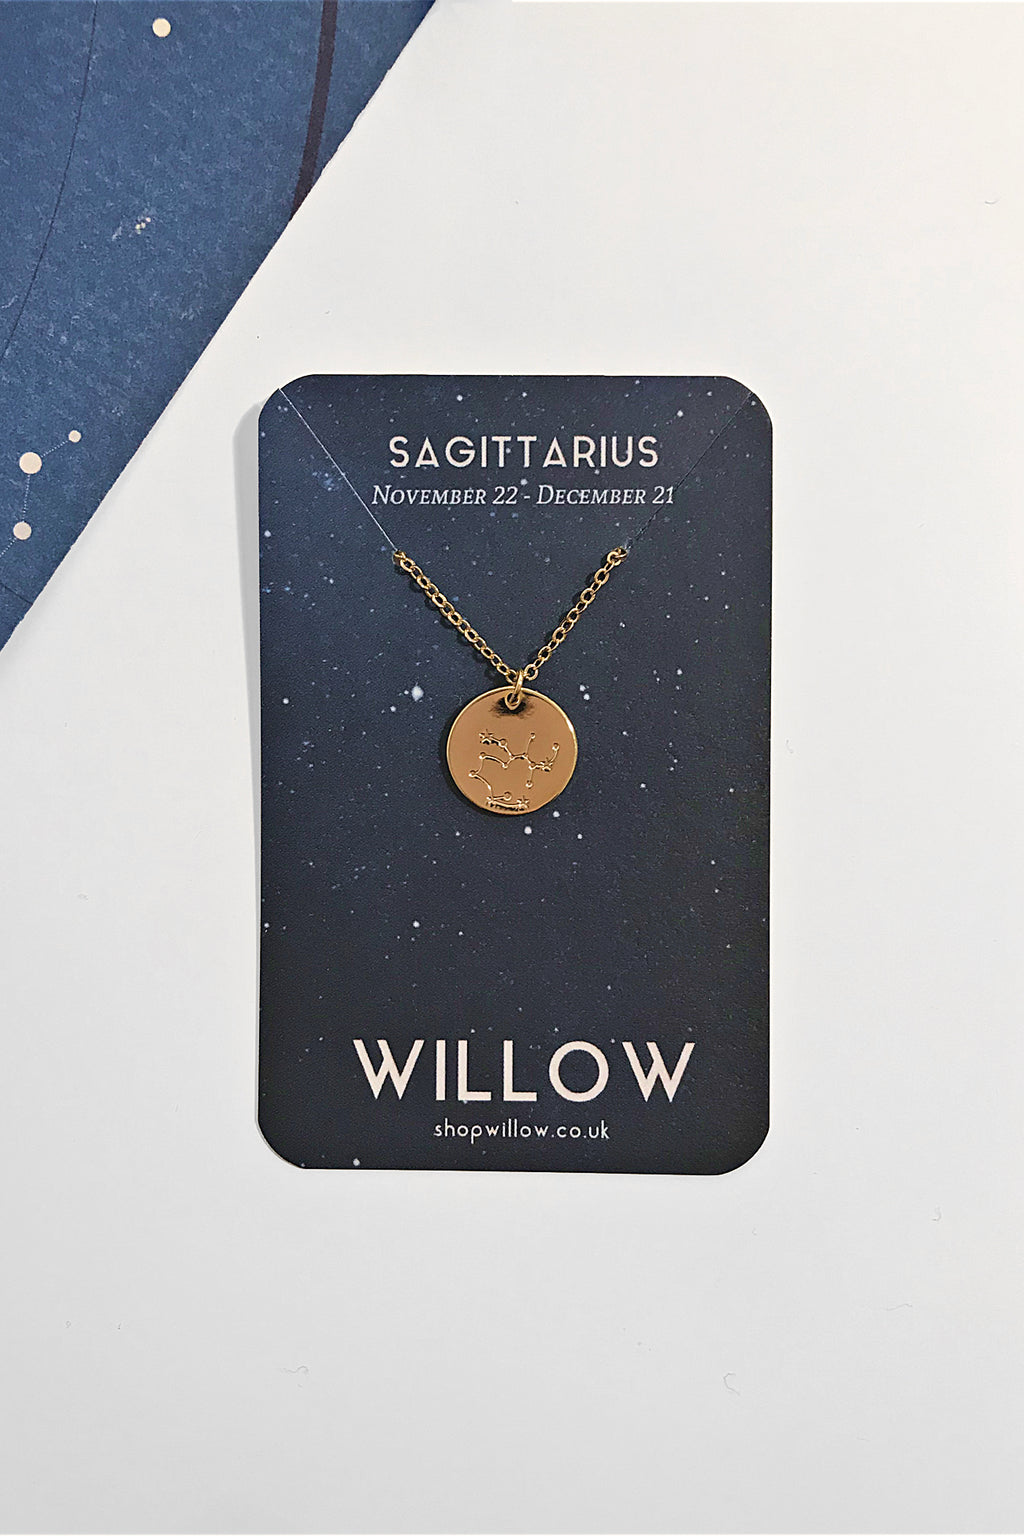 Sagittarius constellation disc necklace